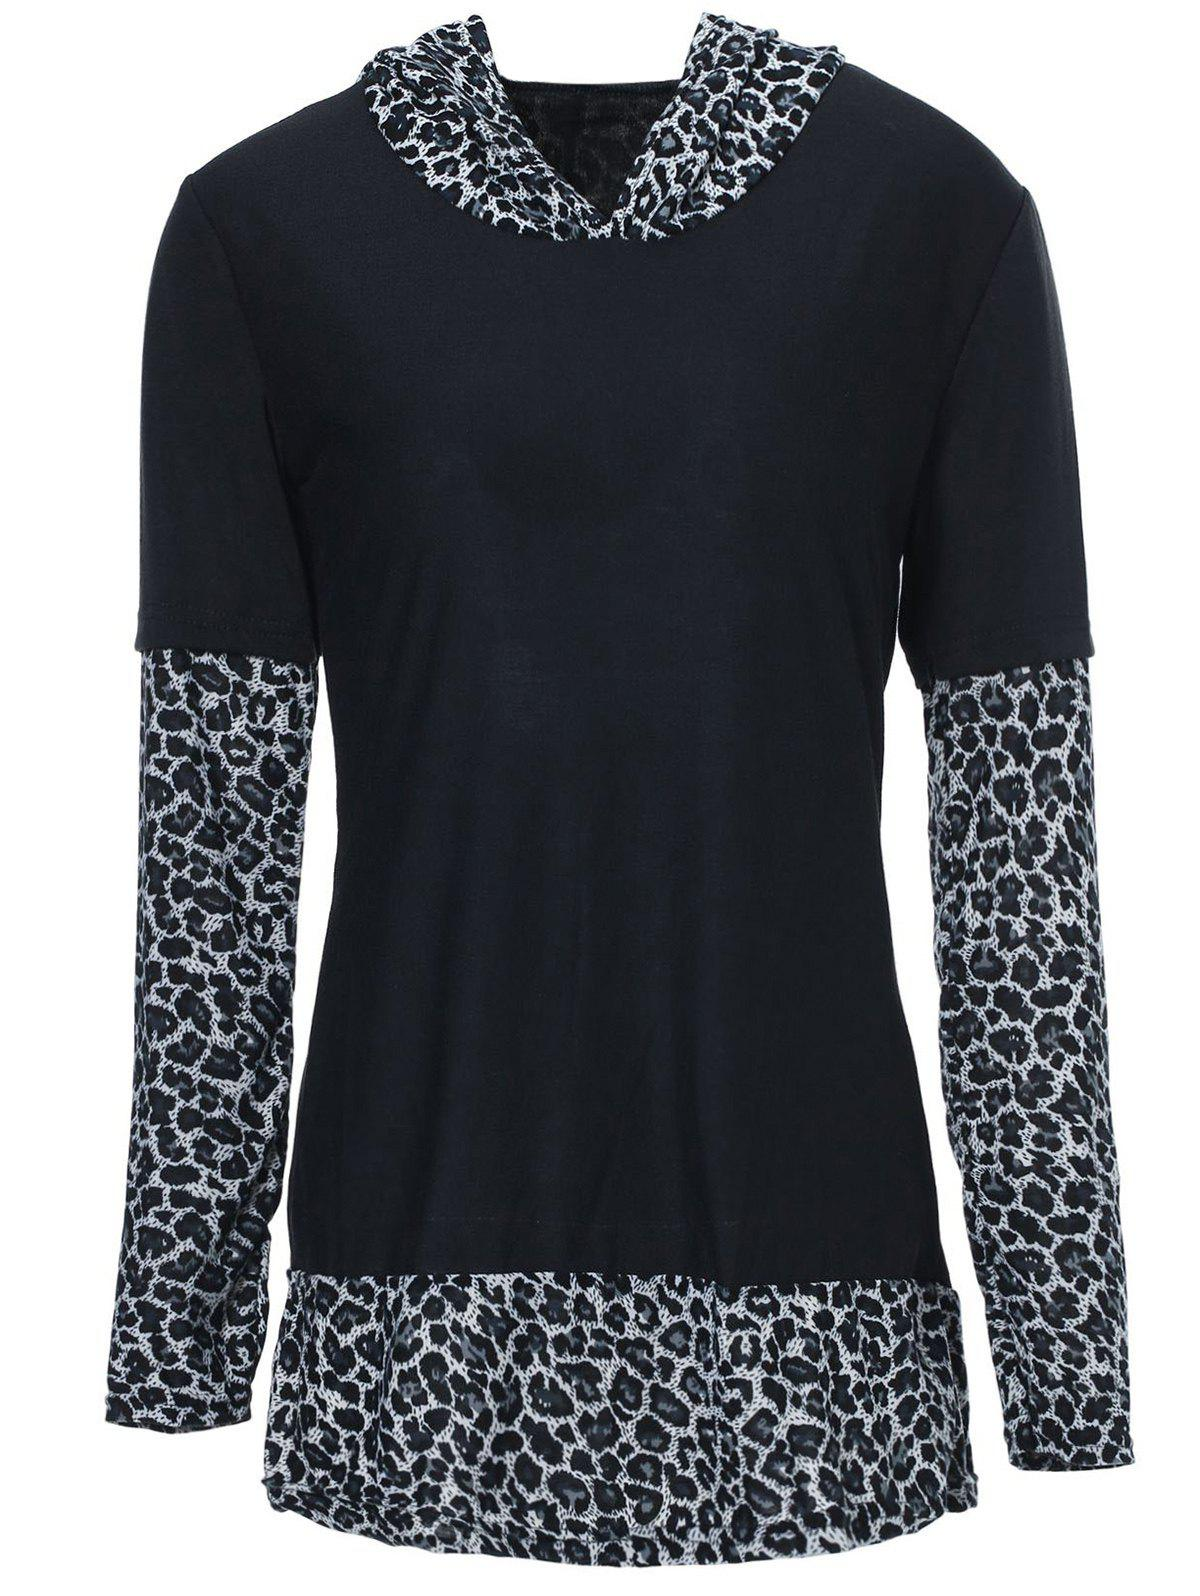 Sexy Leopard Hooded Long Sleeve T-Shirt For Women - SILVER S